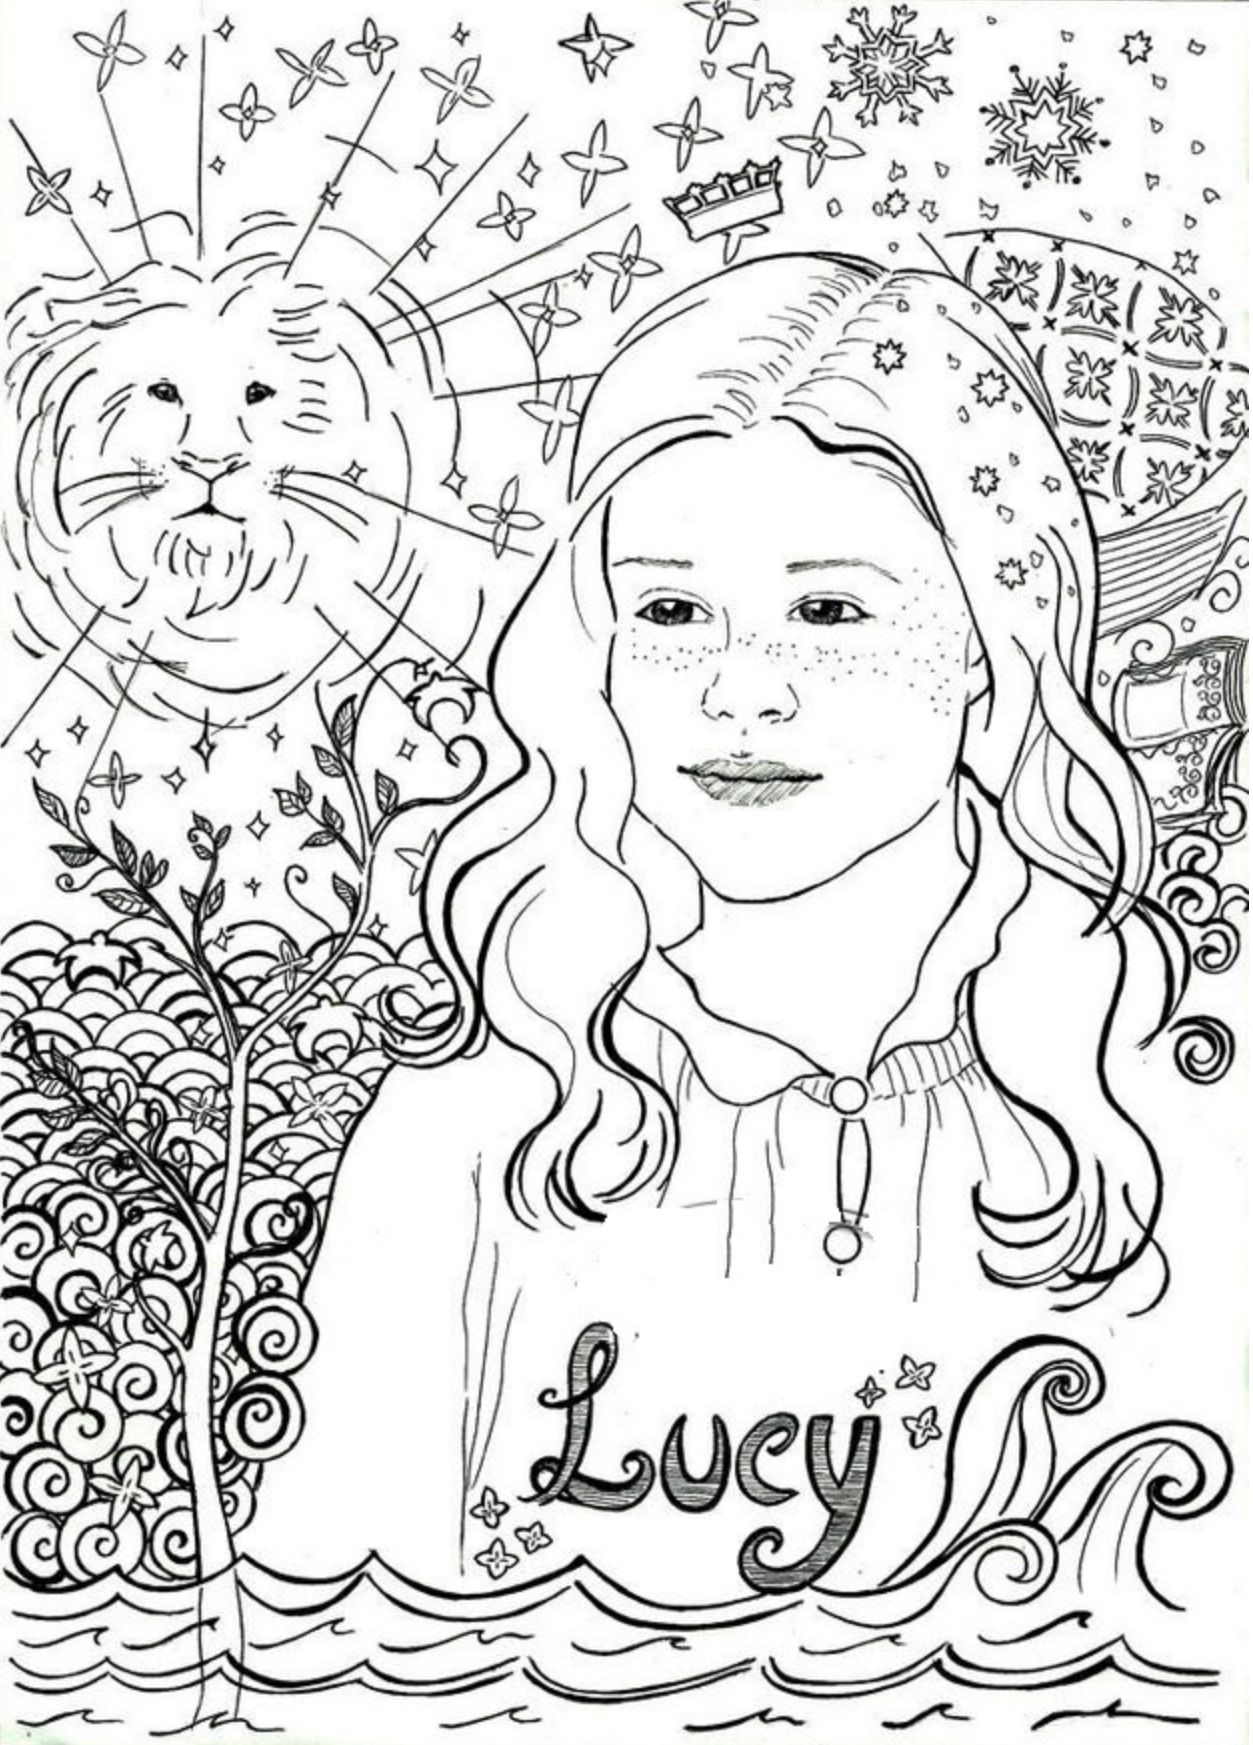 Pin By Cs Parker On Coloring Pages In 2020 Lucy Pevensie Coloring Pages Narnia